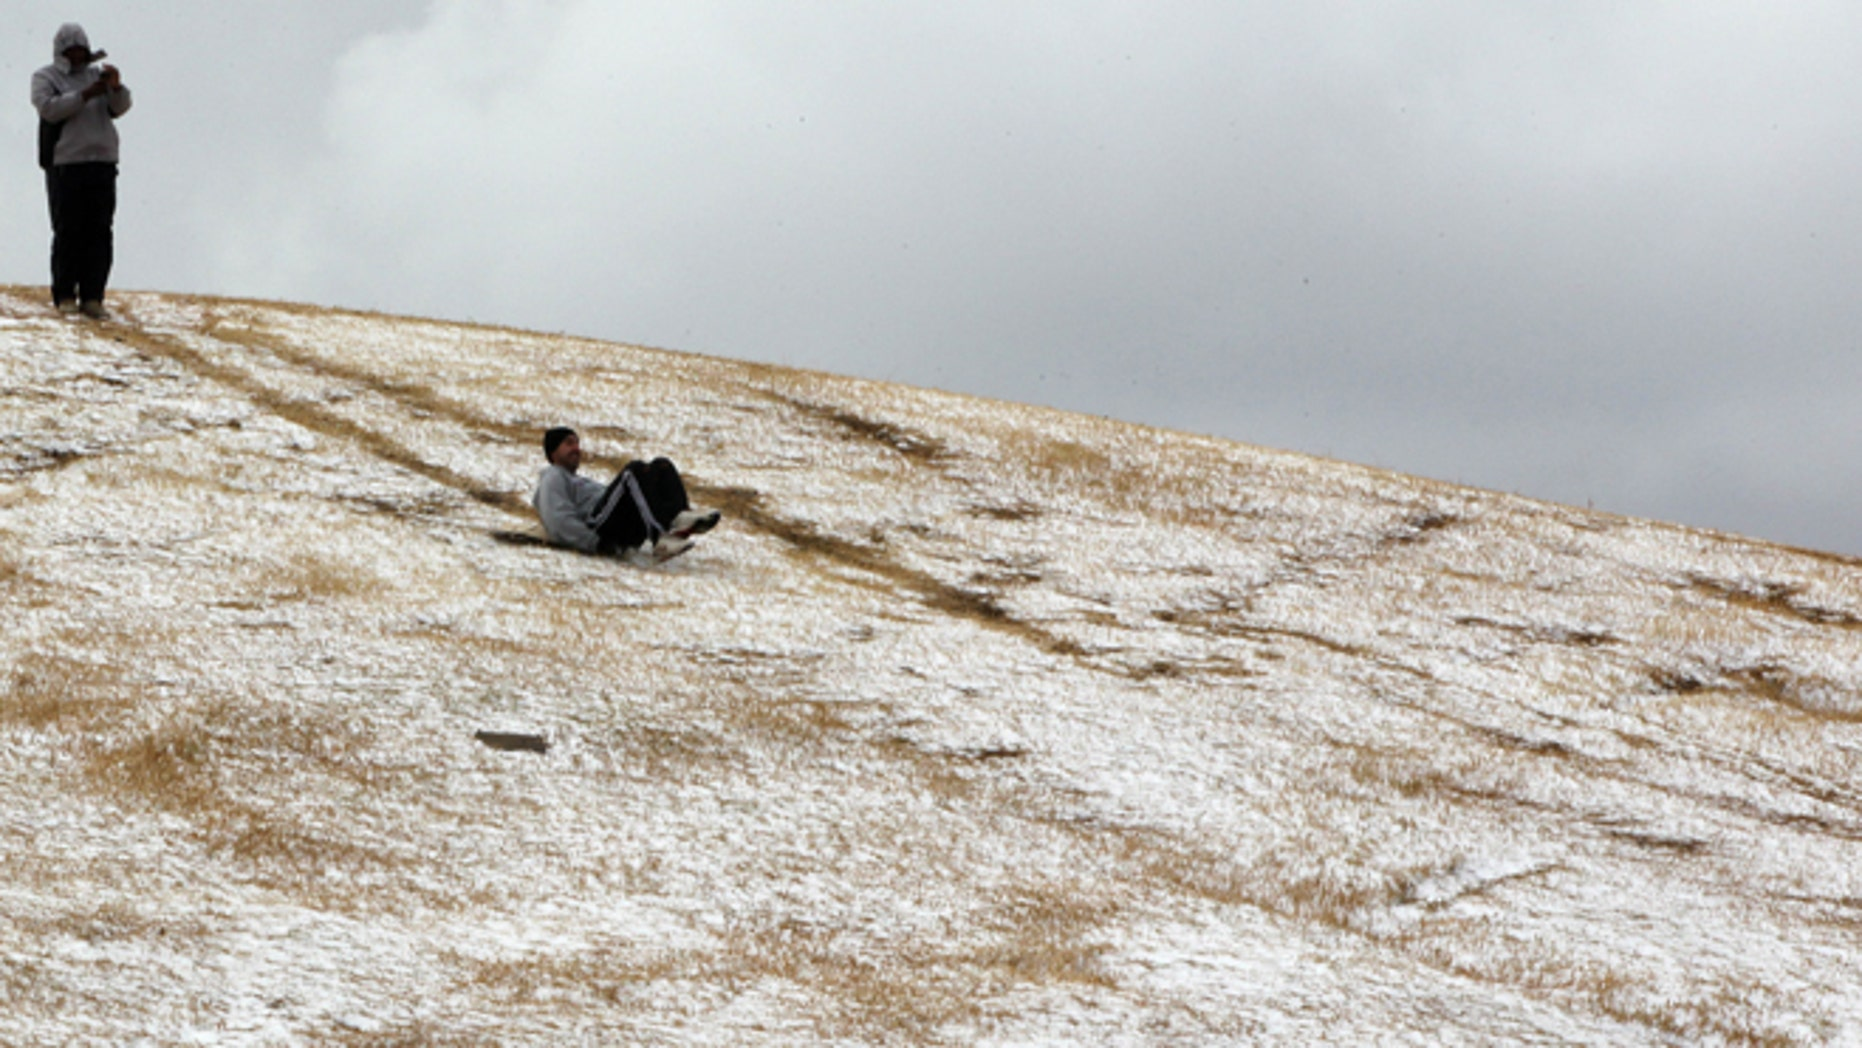 Aug. 7, 2012: A man slides down a hill after a rare snowfall in Johannesburg, South Africa.